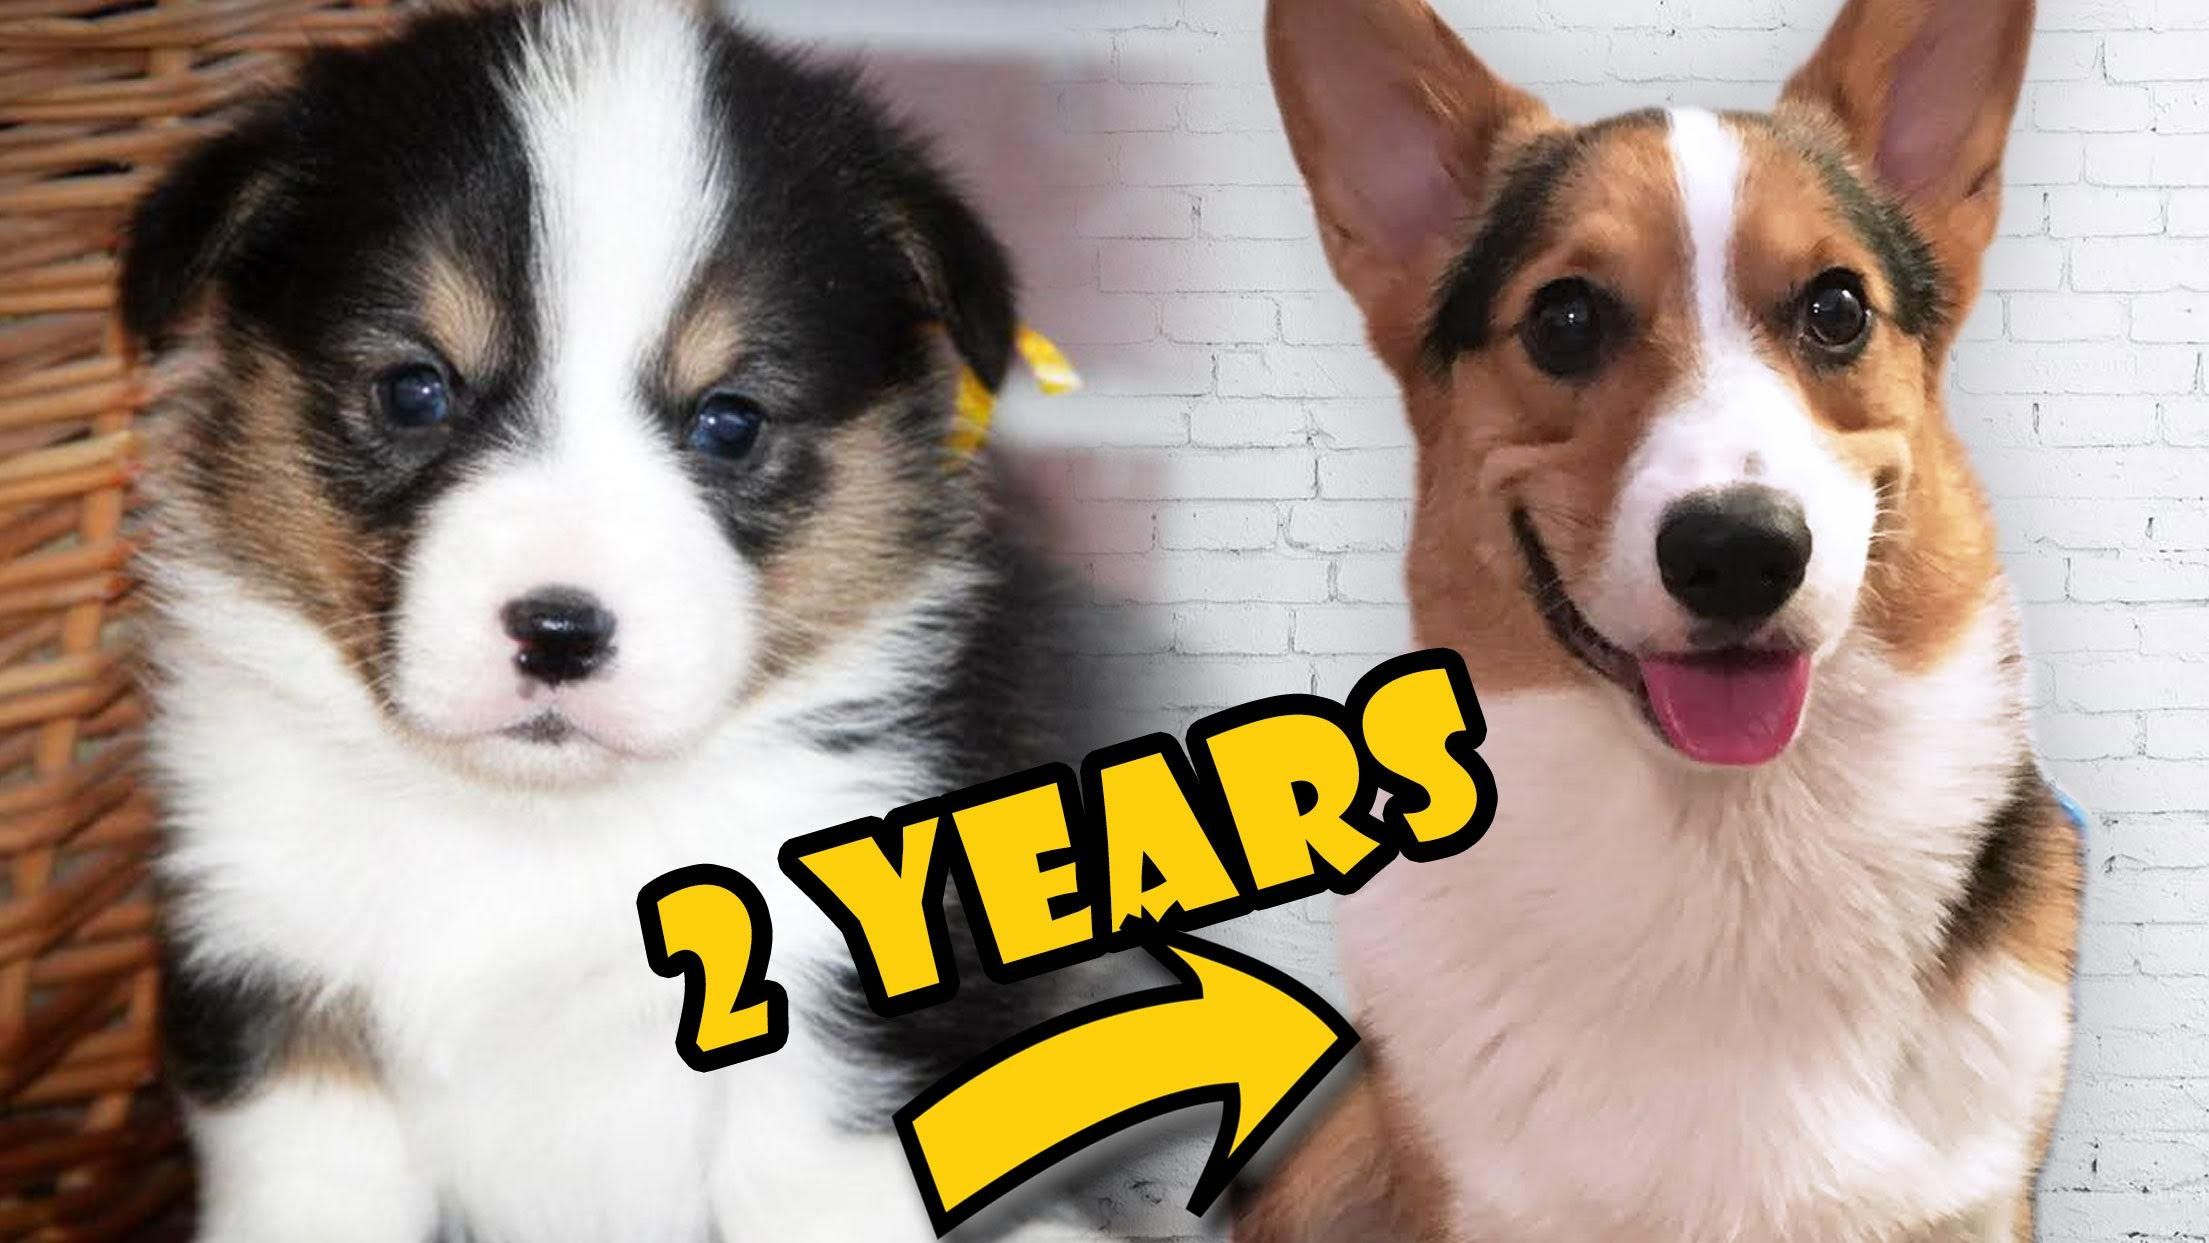 2 Year Anniversary of Puppy to Adult Dog. Also